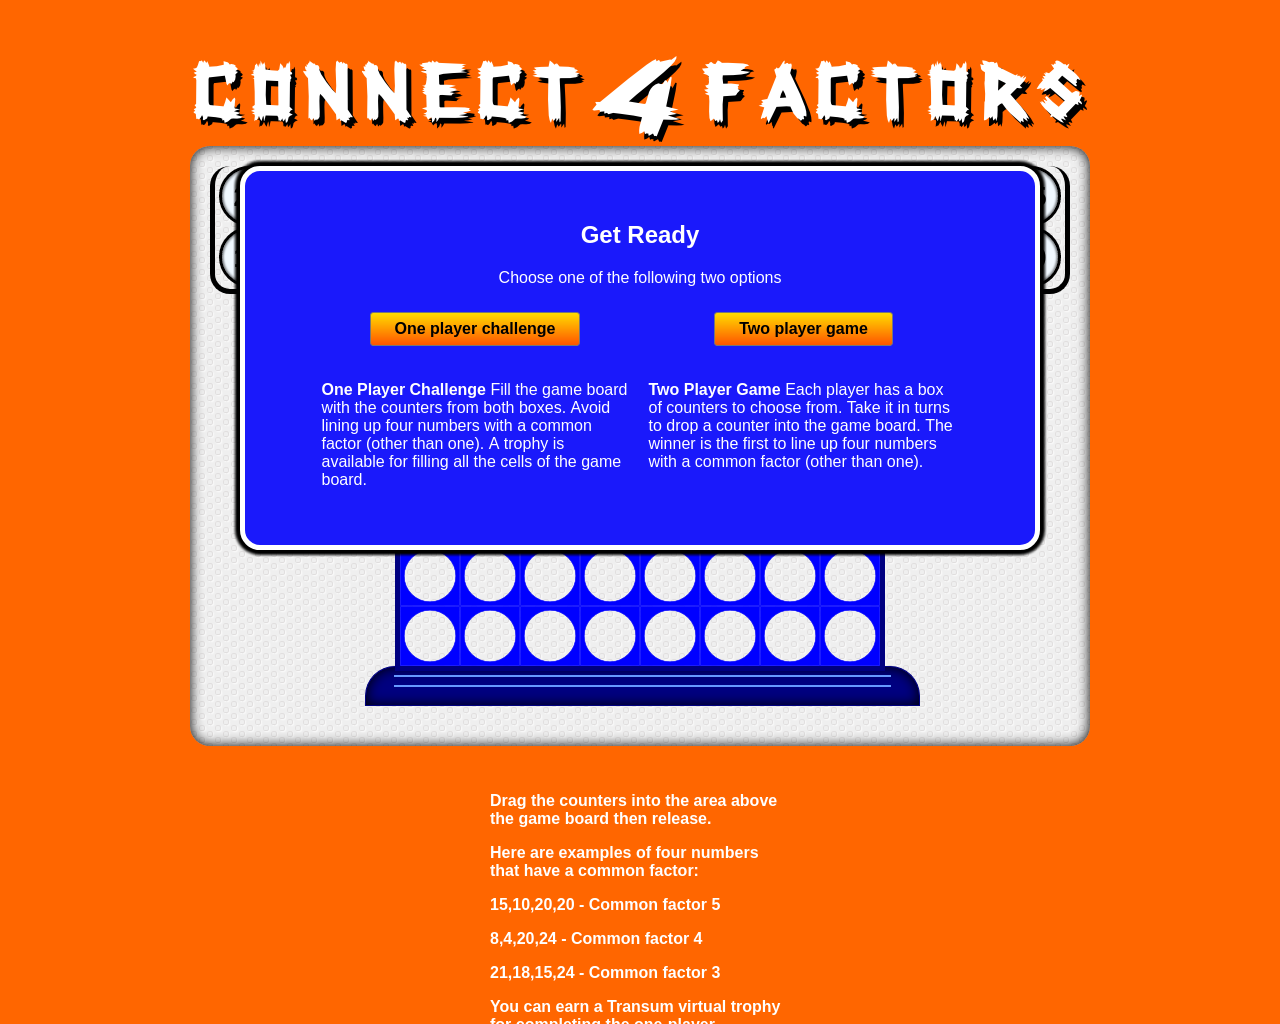 Connect Four Factors